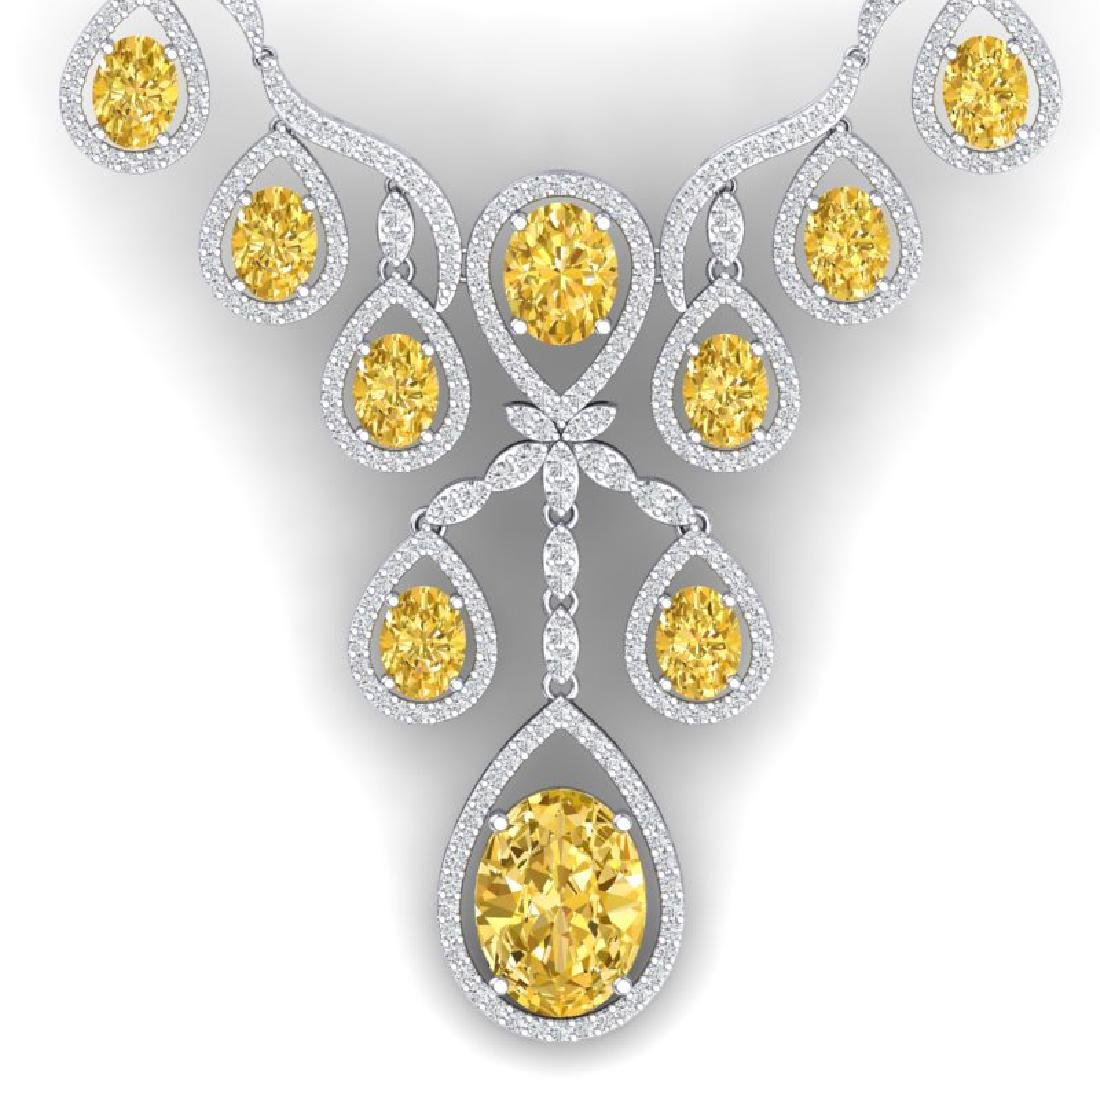 36.51 CTW Royalty Canary Citrine & VS Diamond Necklace